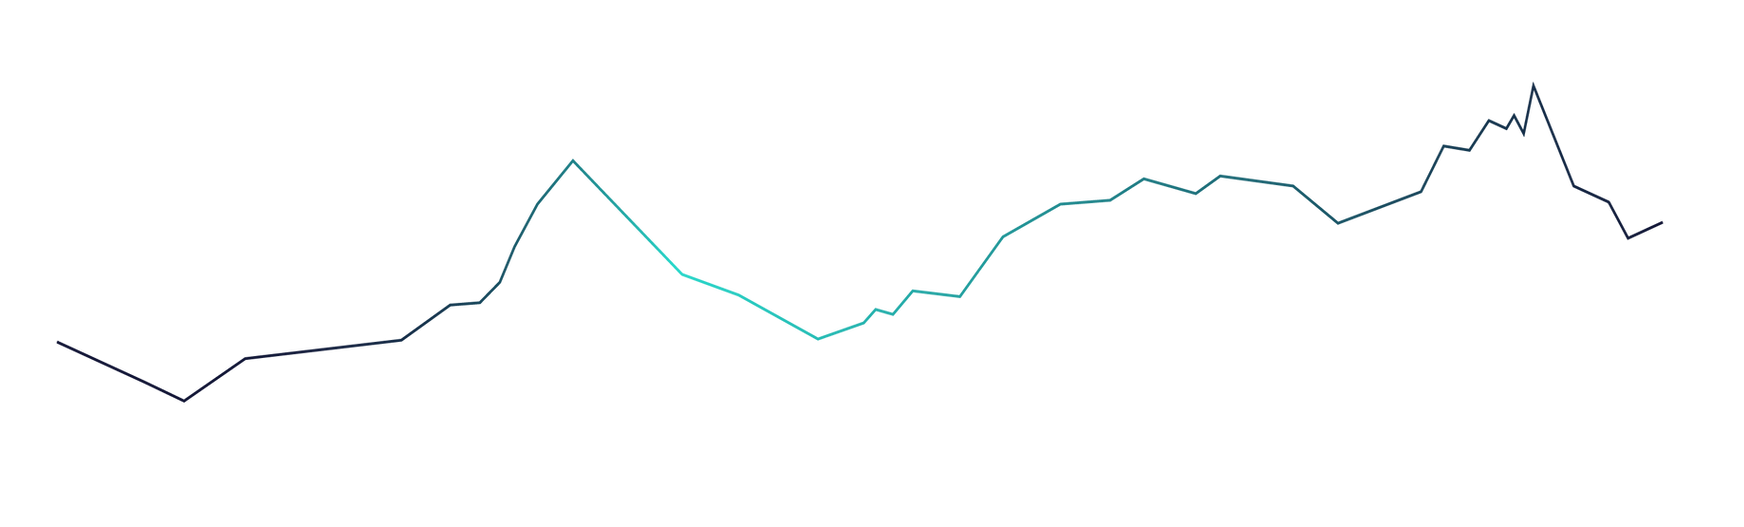 Wave_Graph-14.png